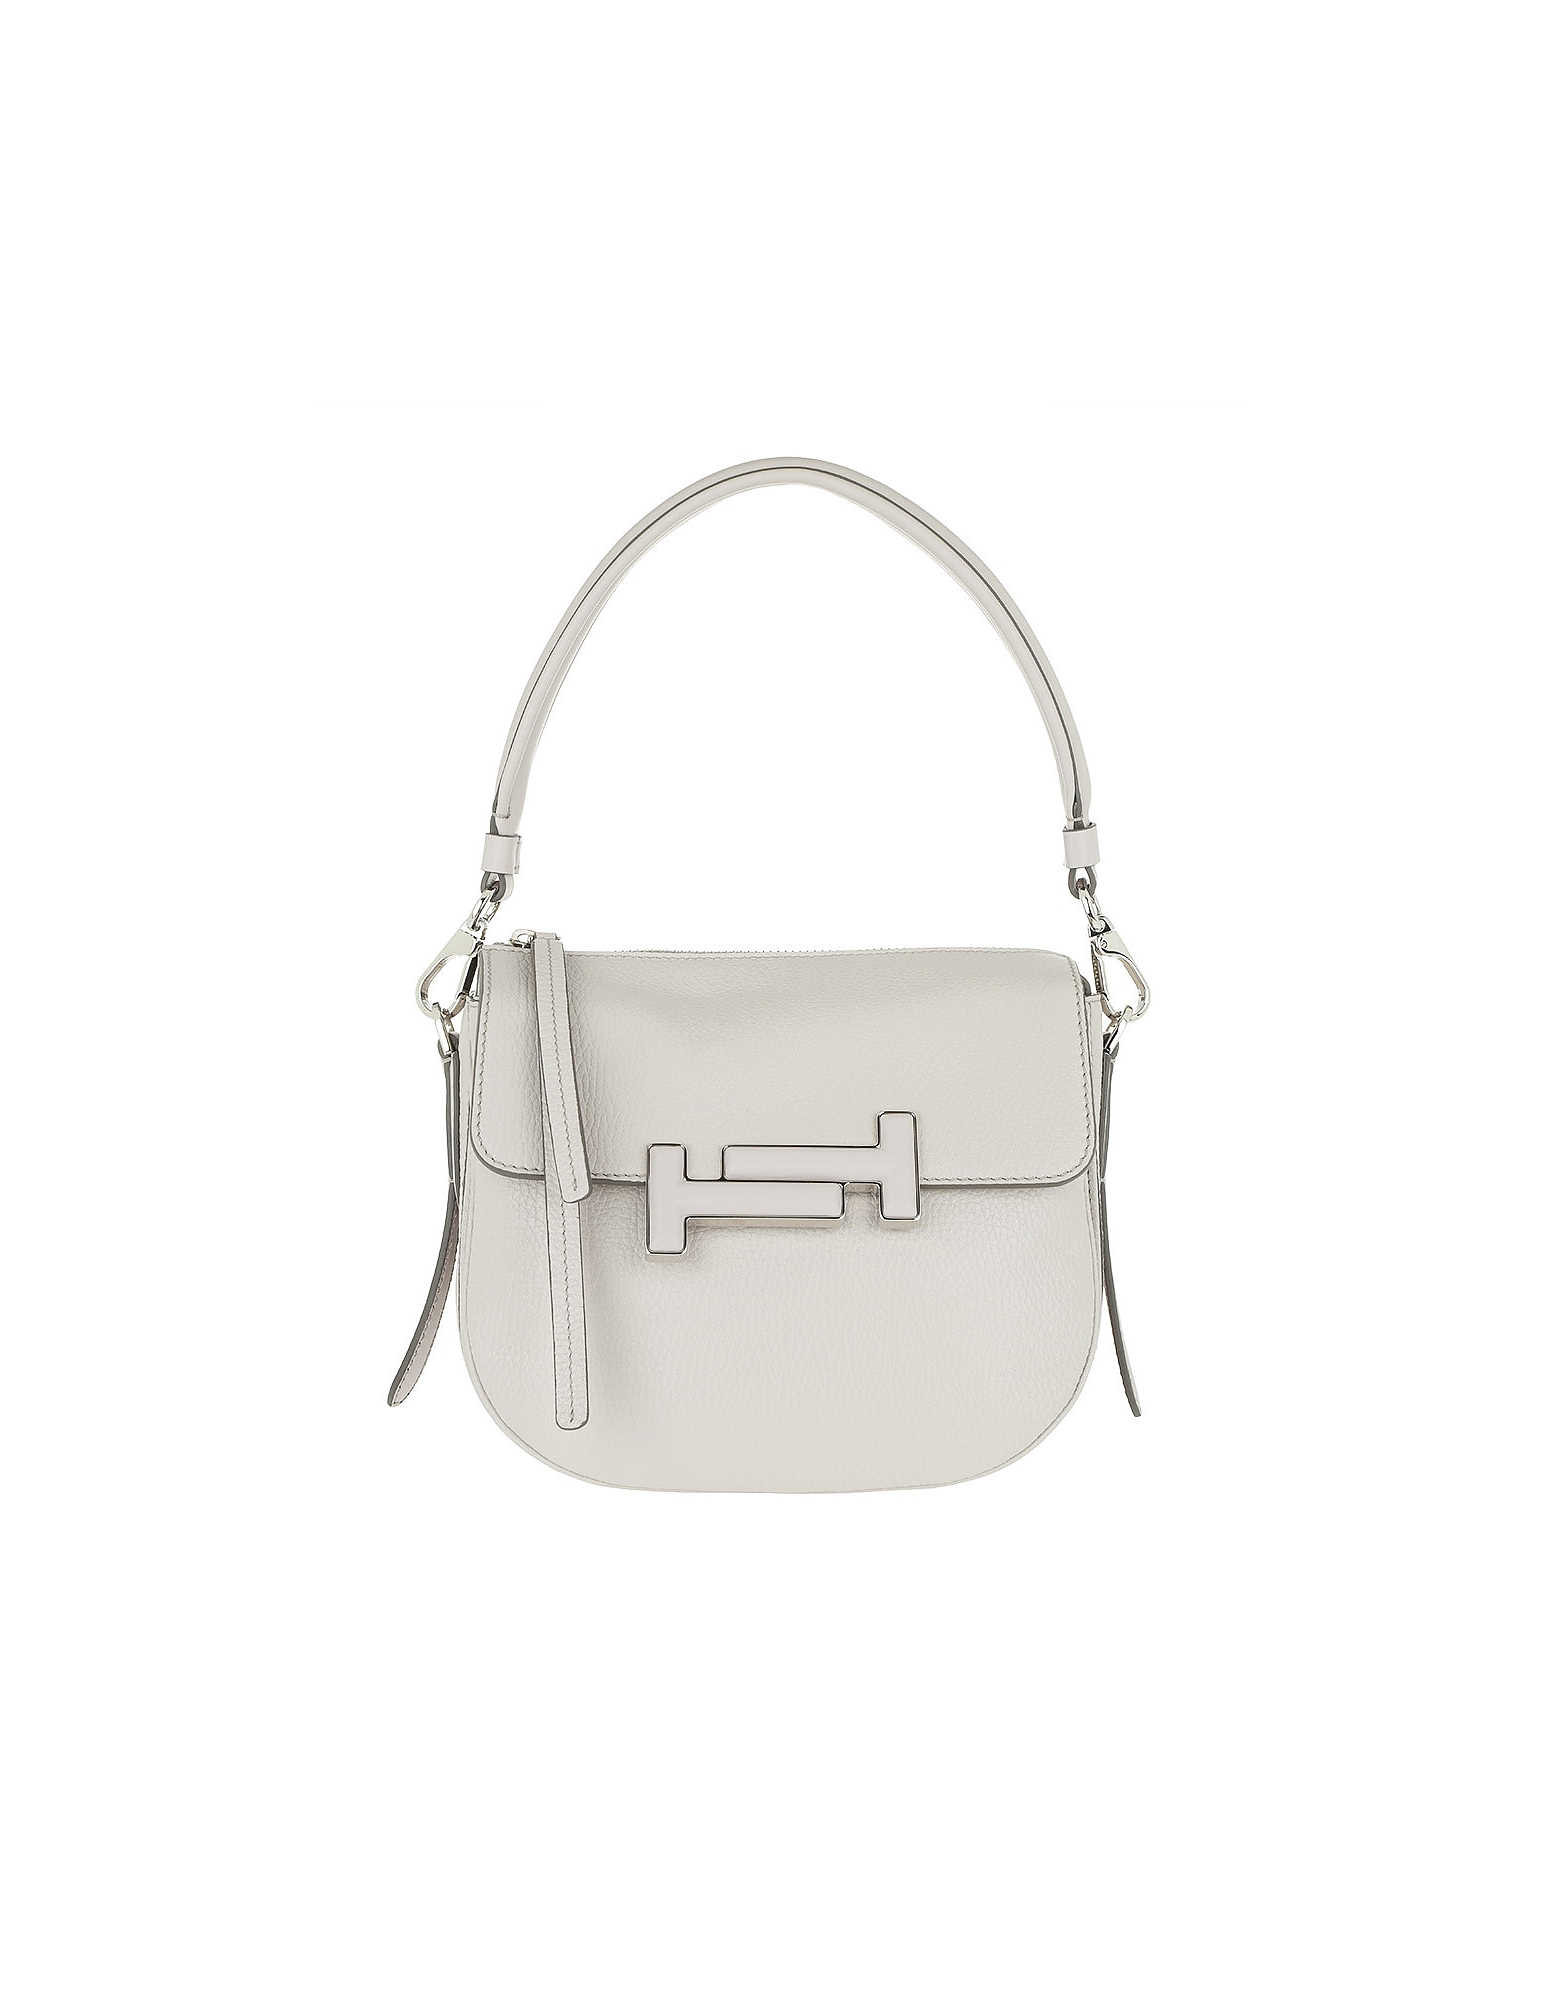 Double T Mini Gray Crossbody Bag